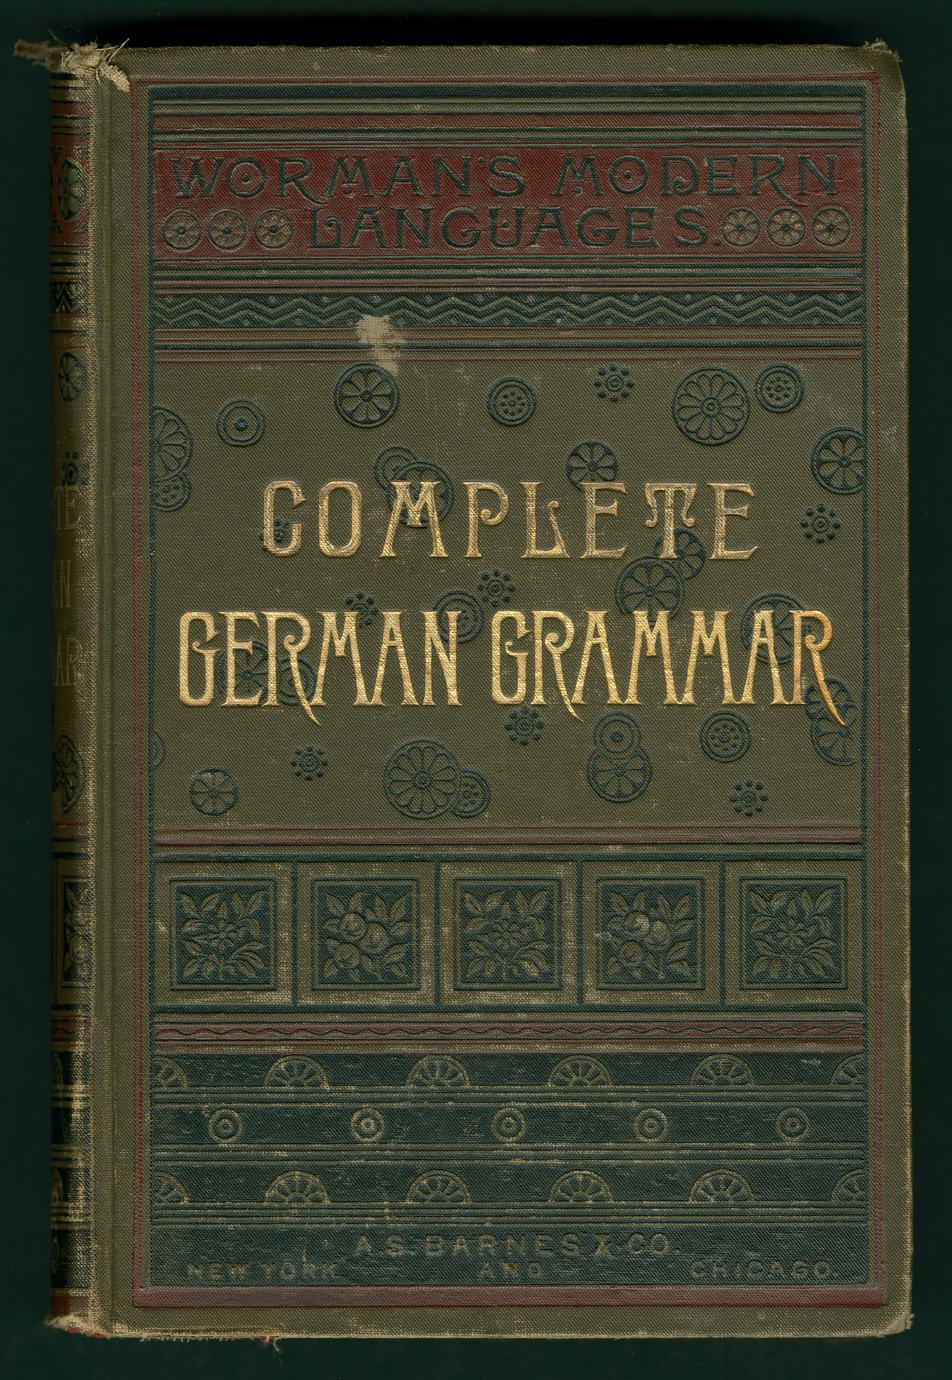 A complete grammar of the German language : with exercises, readings, conversations, paradigms, and an adequate vocabulary (1 of 5)